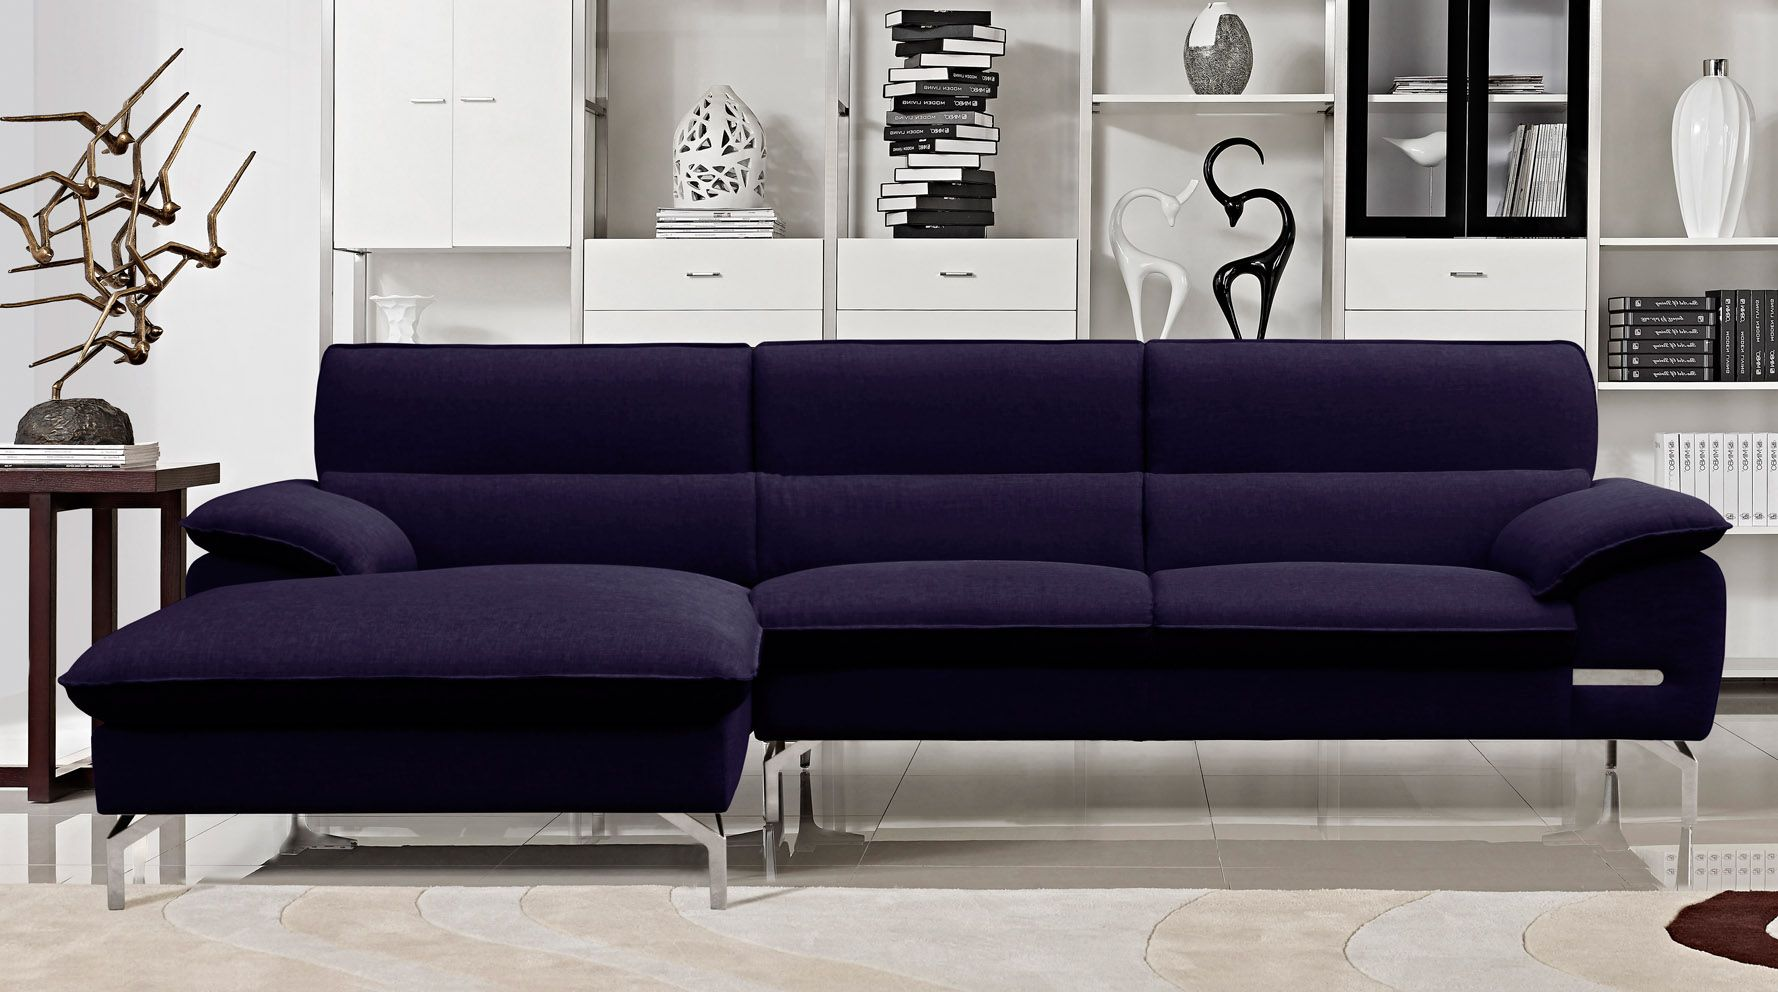 Sapphire Sectional Zuri Furniture Contemporary Sectional Sofa Cheap Living Room Sets Cheap Living Room Furniture #sectional #sofa #living #room #sets